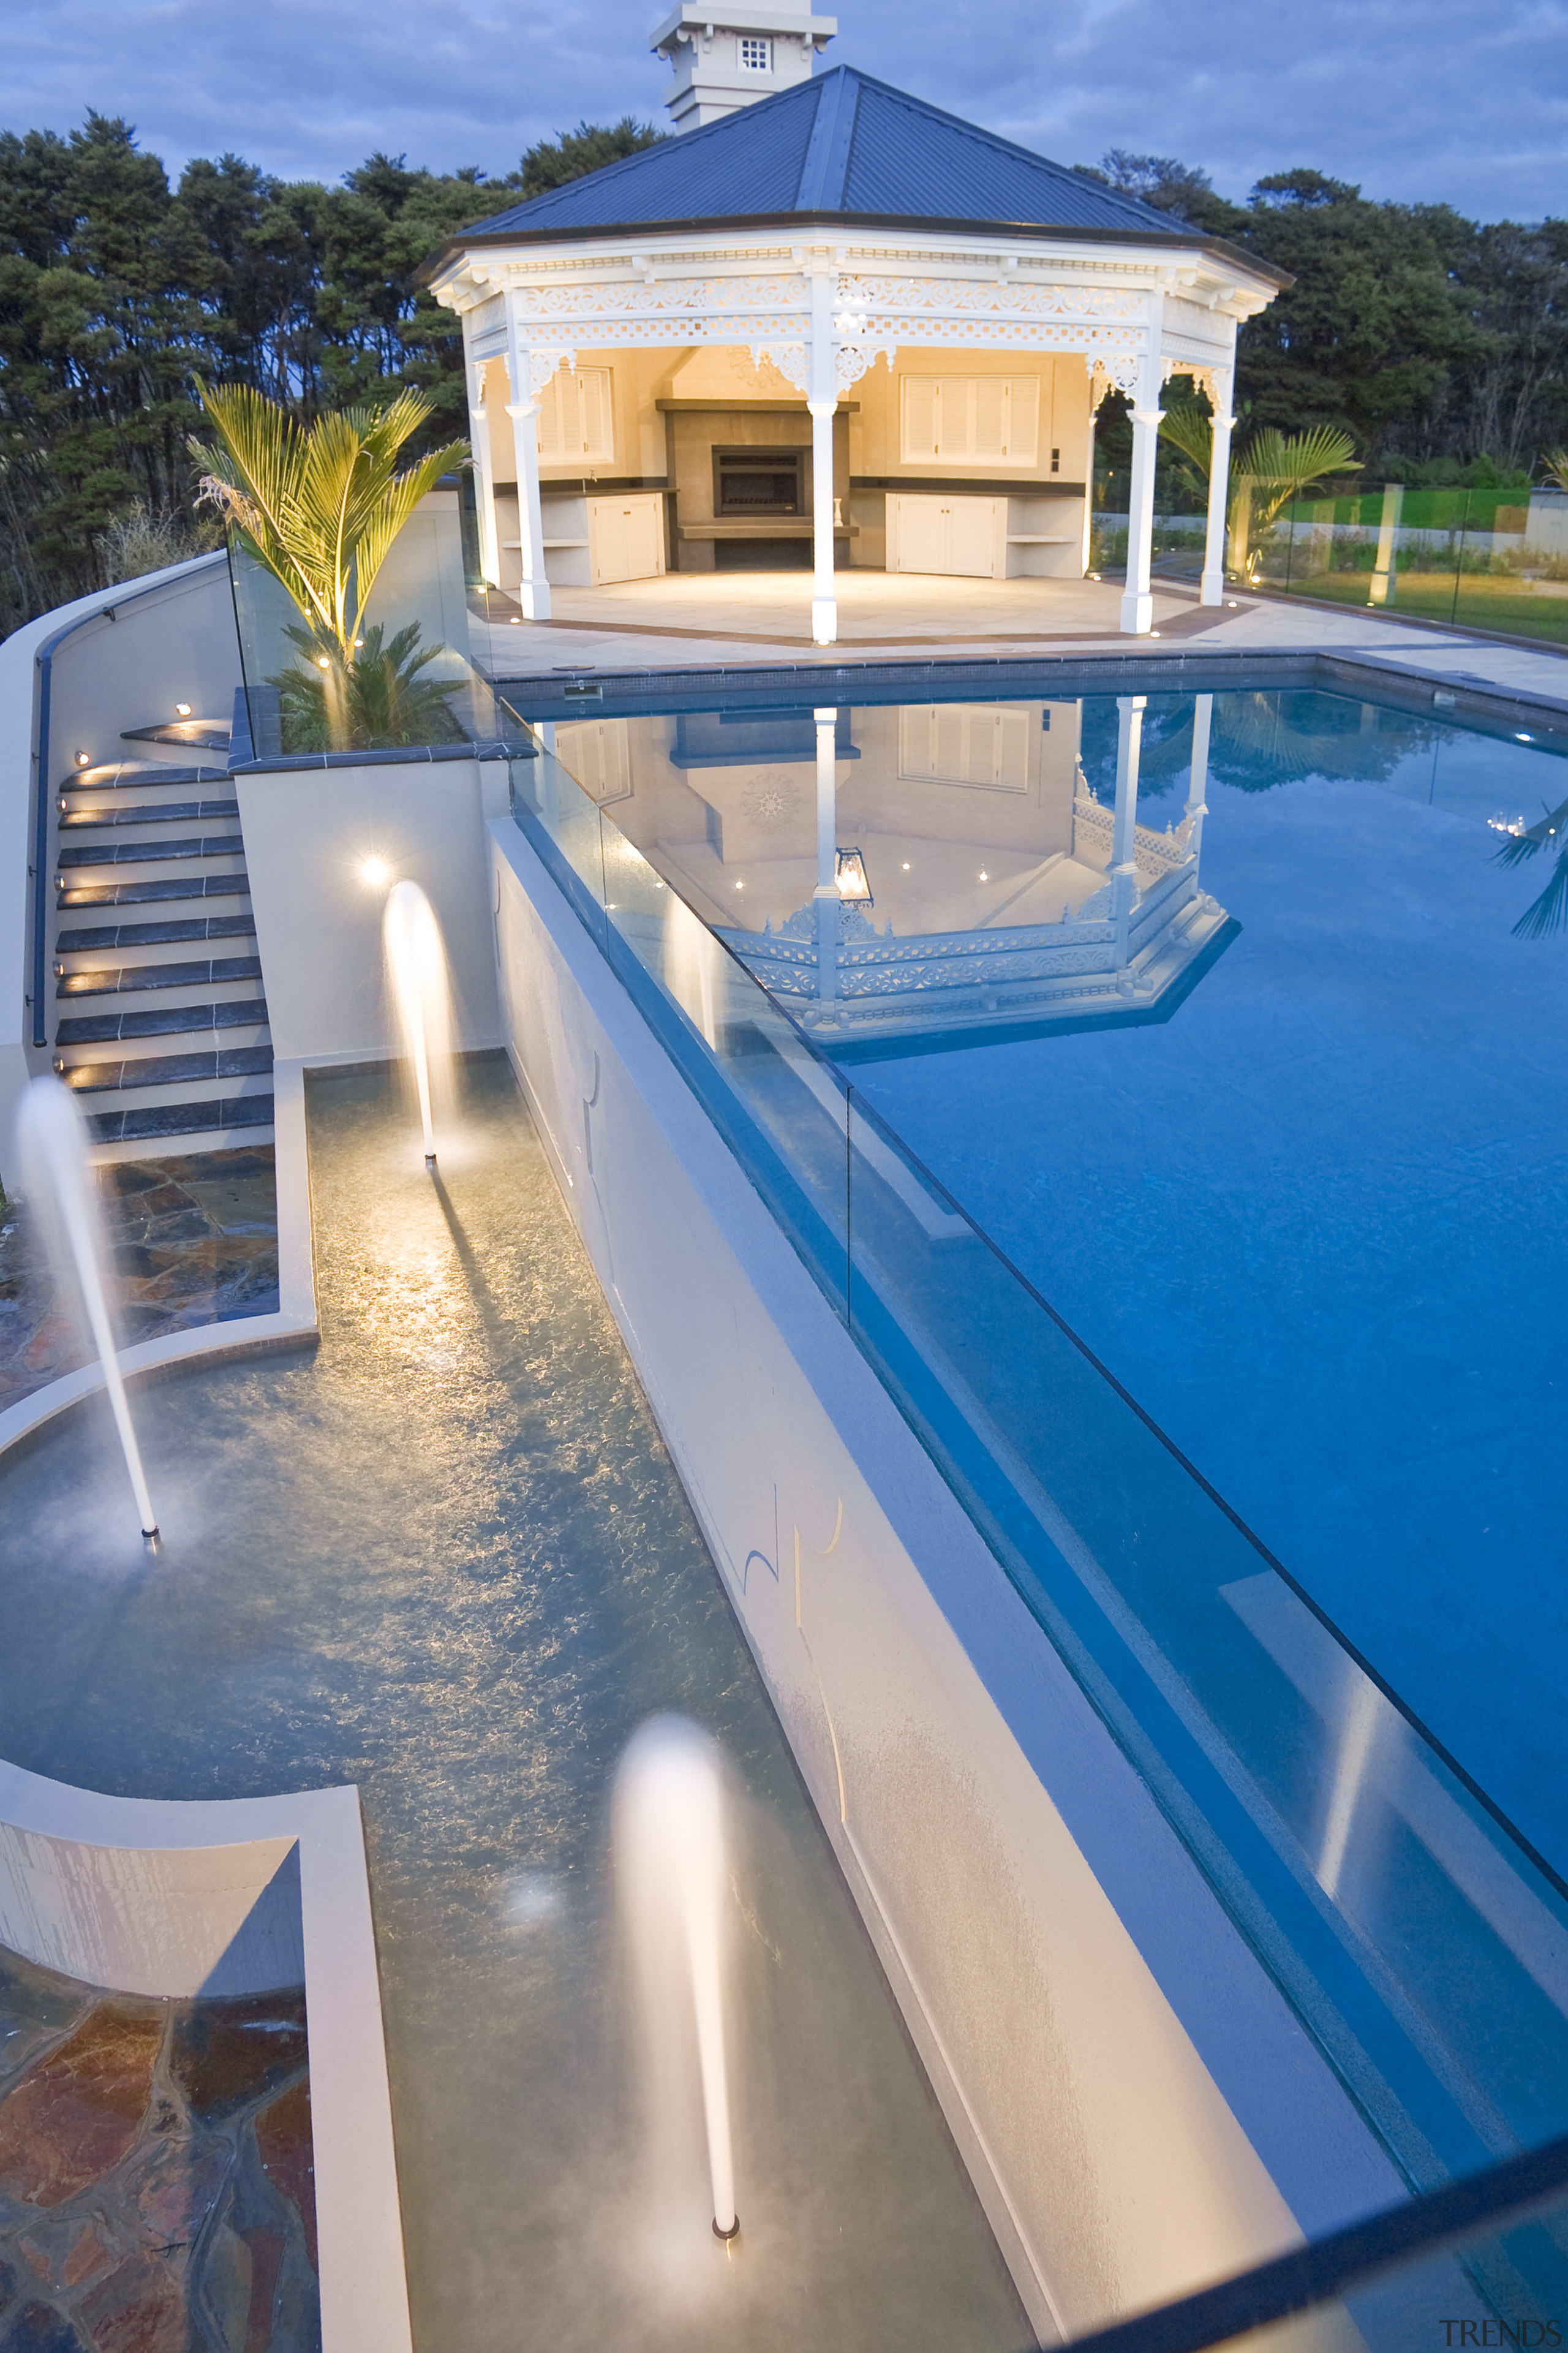 Morgan Pools Created The Pool, Spa And Water Features For